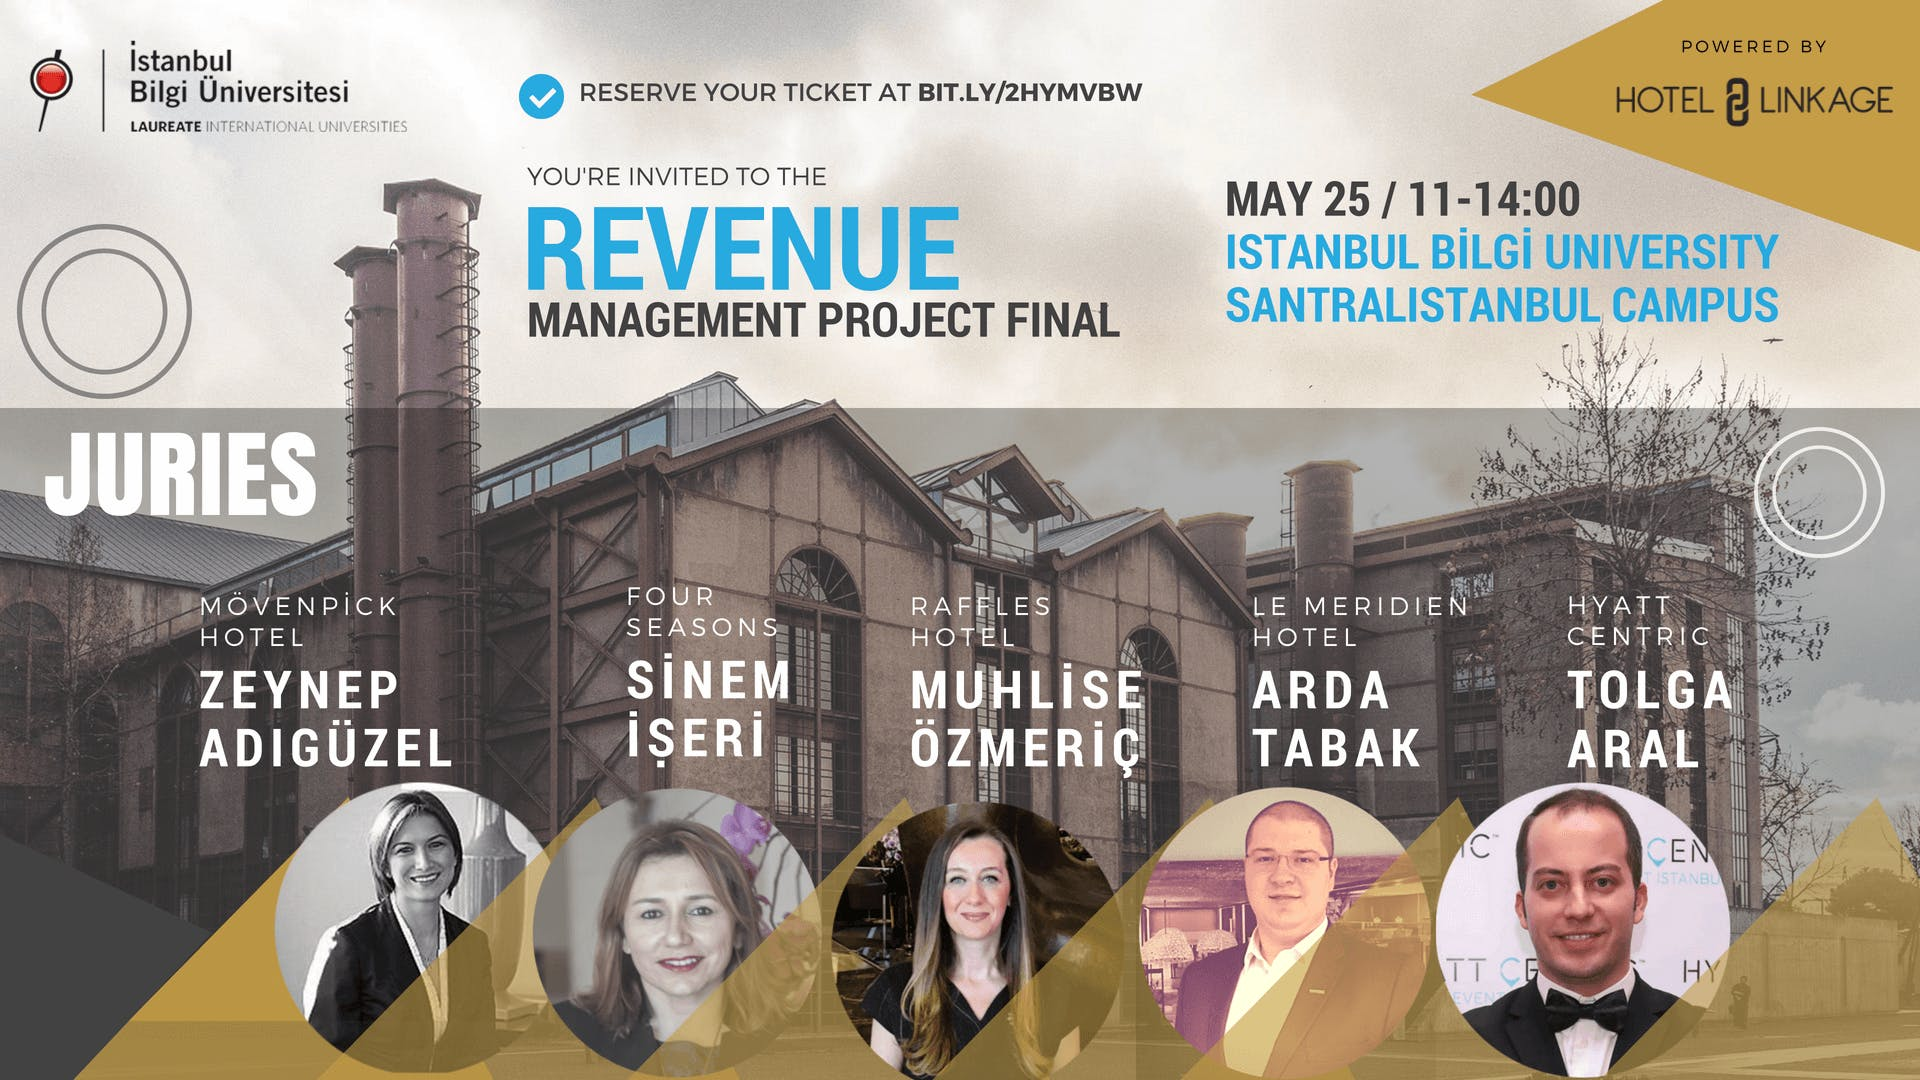 Revenue Management Project Final (Bilgi Unive